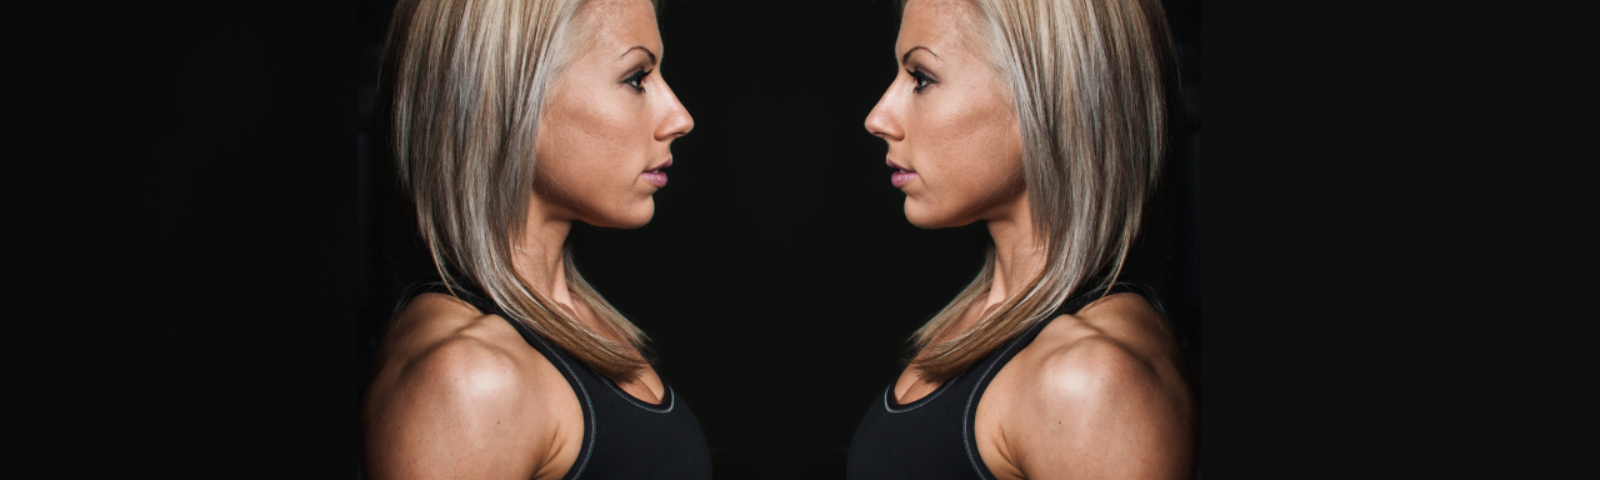 A woman looking at her mirror reflection for How Your Reflection Can Help You Eat Less, Lose Weight, & Tell the Truth